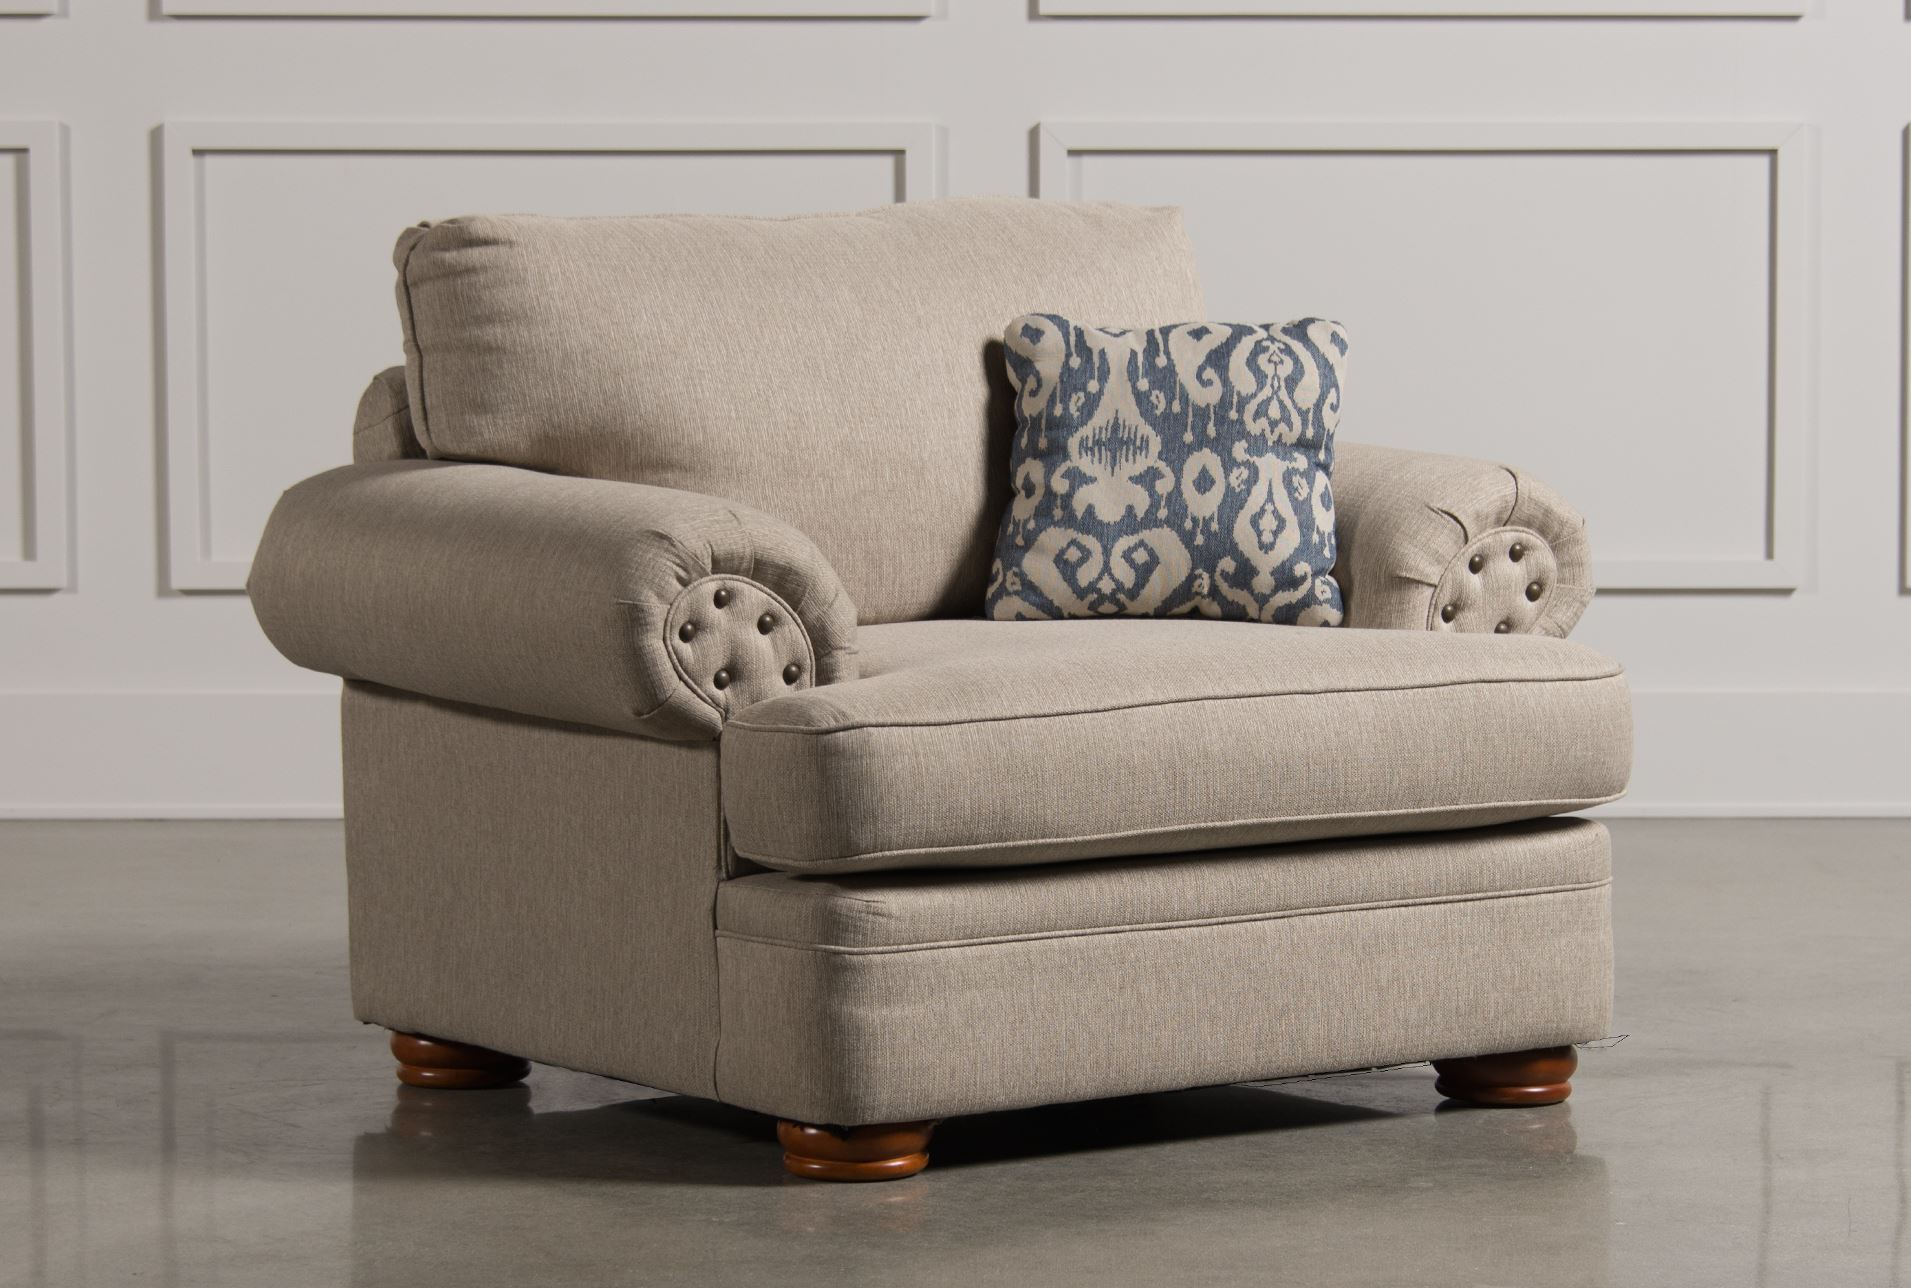 Beige traditional living room furniture living spaces Living spaces furniture